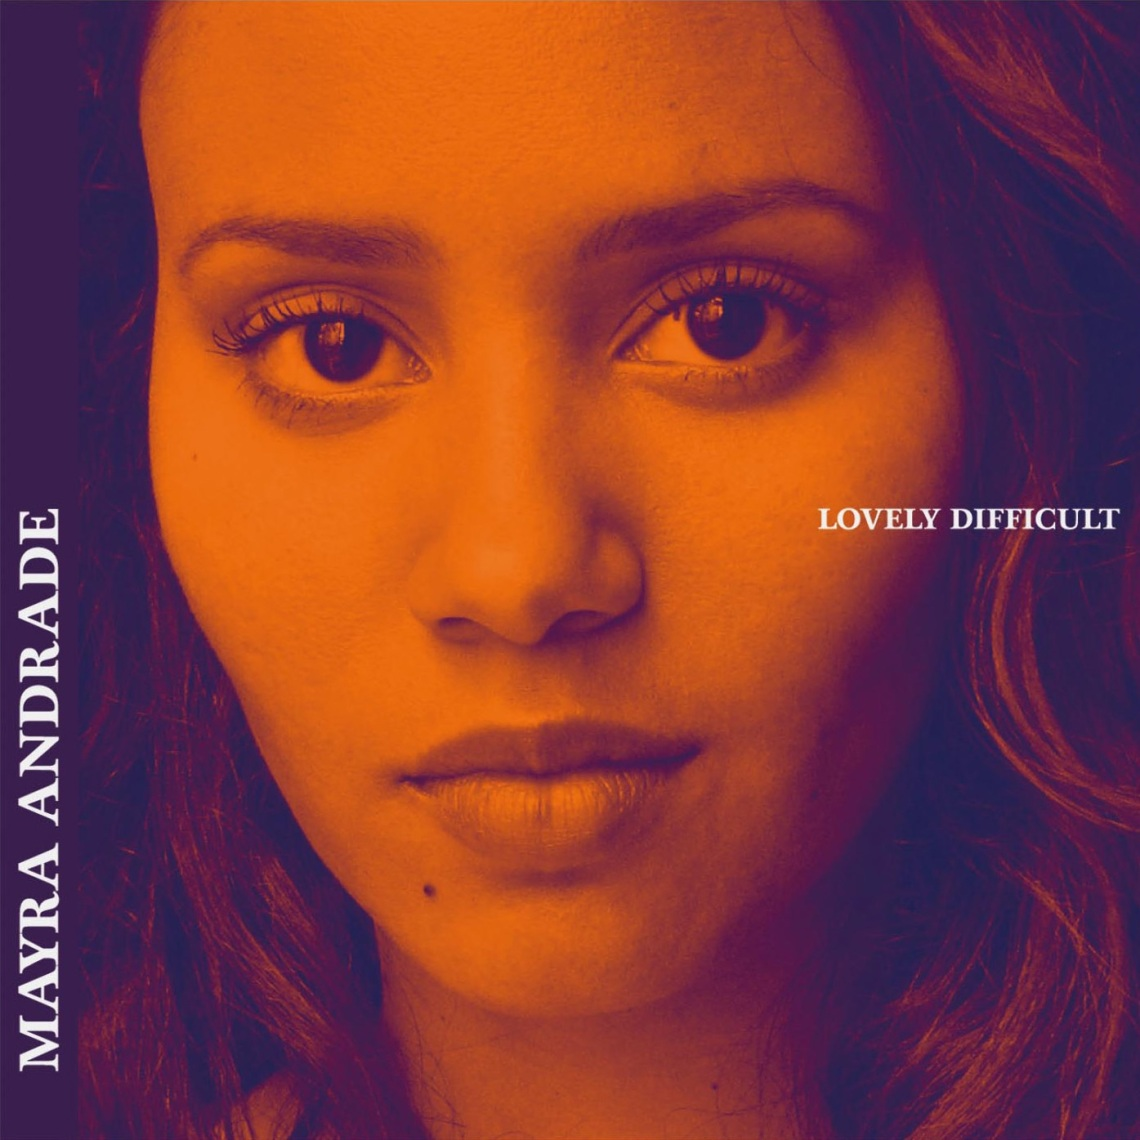 mayra-andrade-lovely-difficult